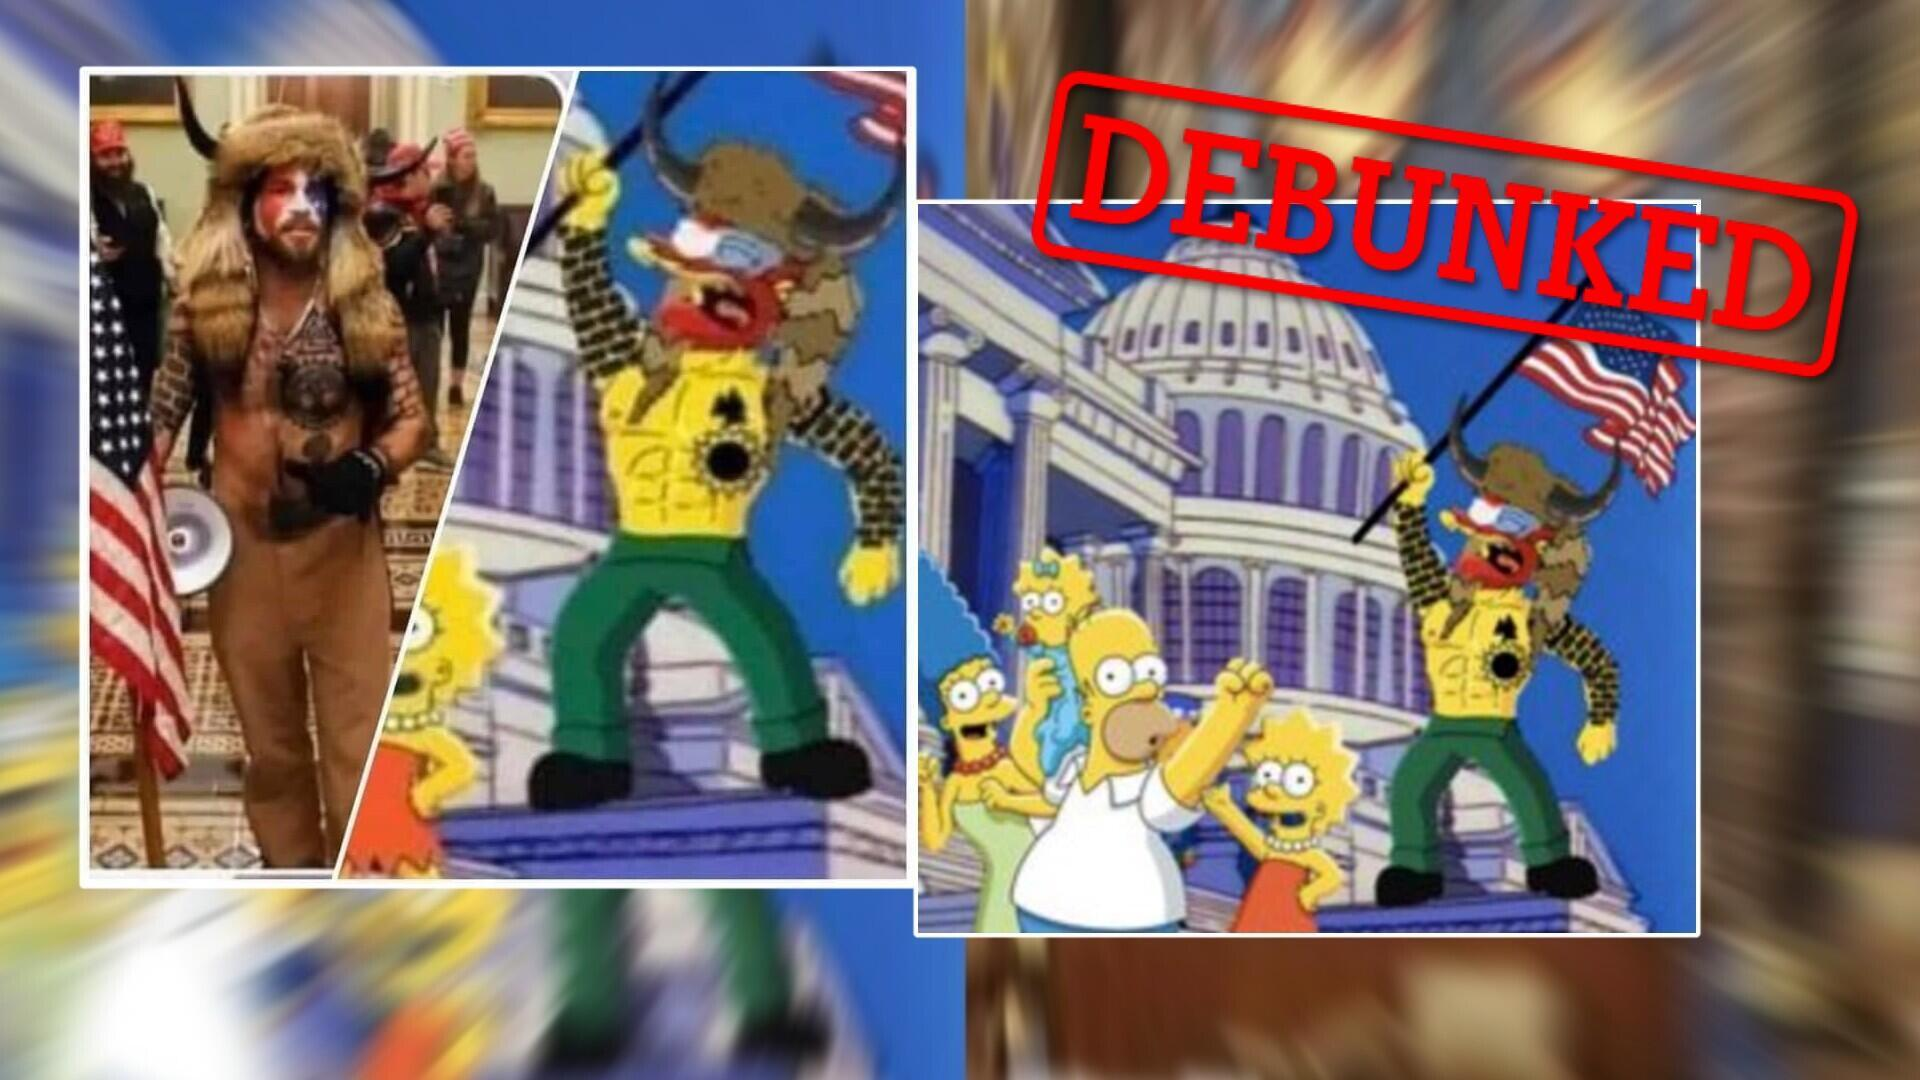 Social media users have been sharing these images widely, claiming that The Simpsons predicted the riots at the Capitol, Washington, D.C. that took place on January 6, 2021.